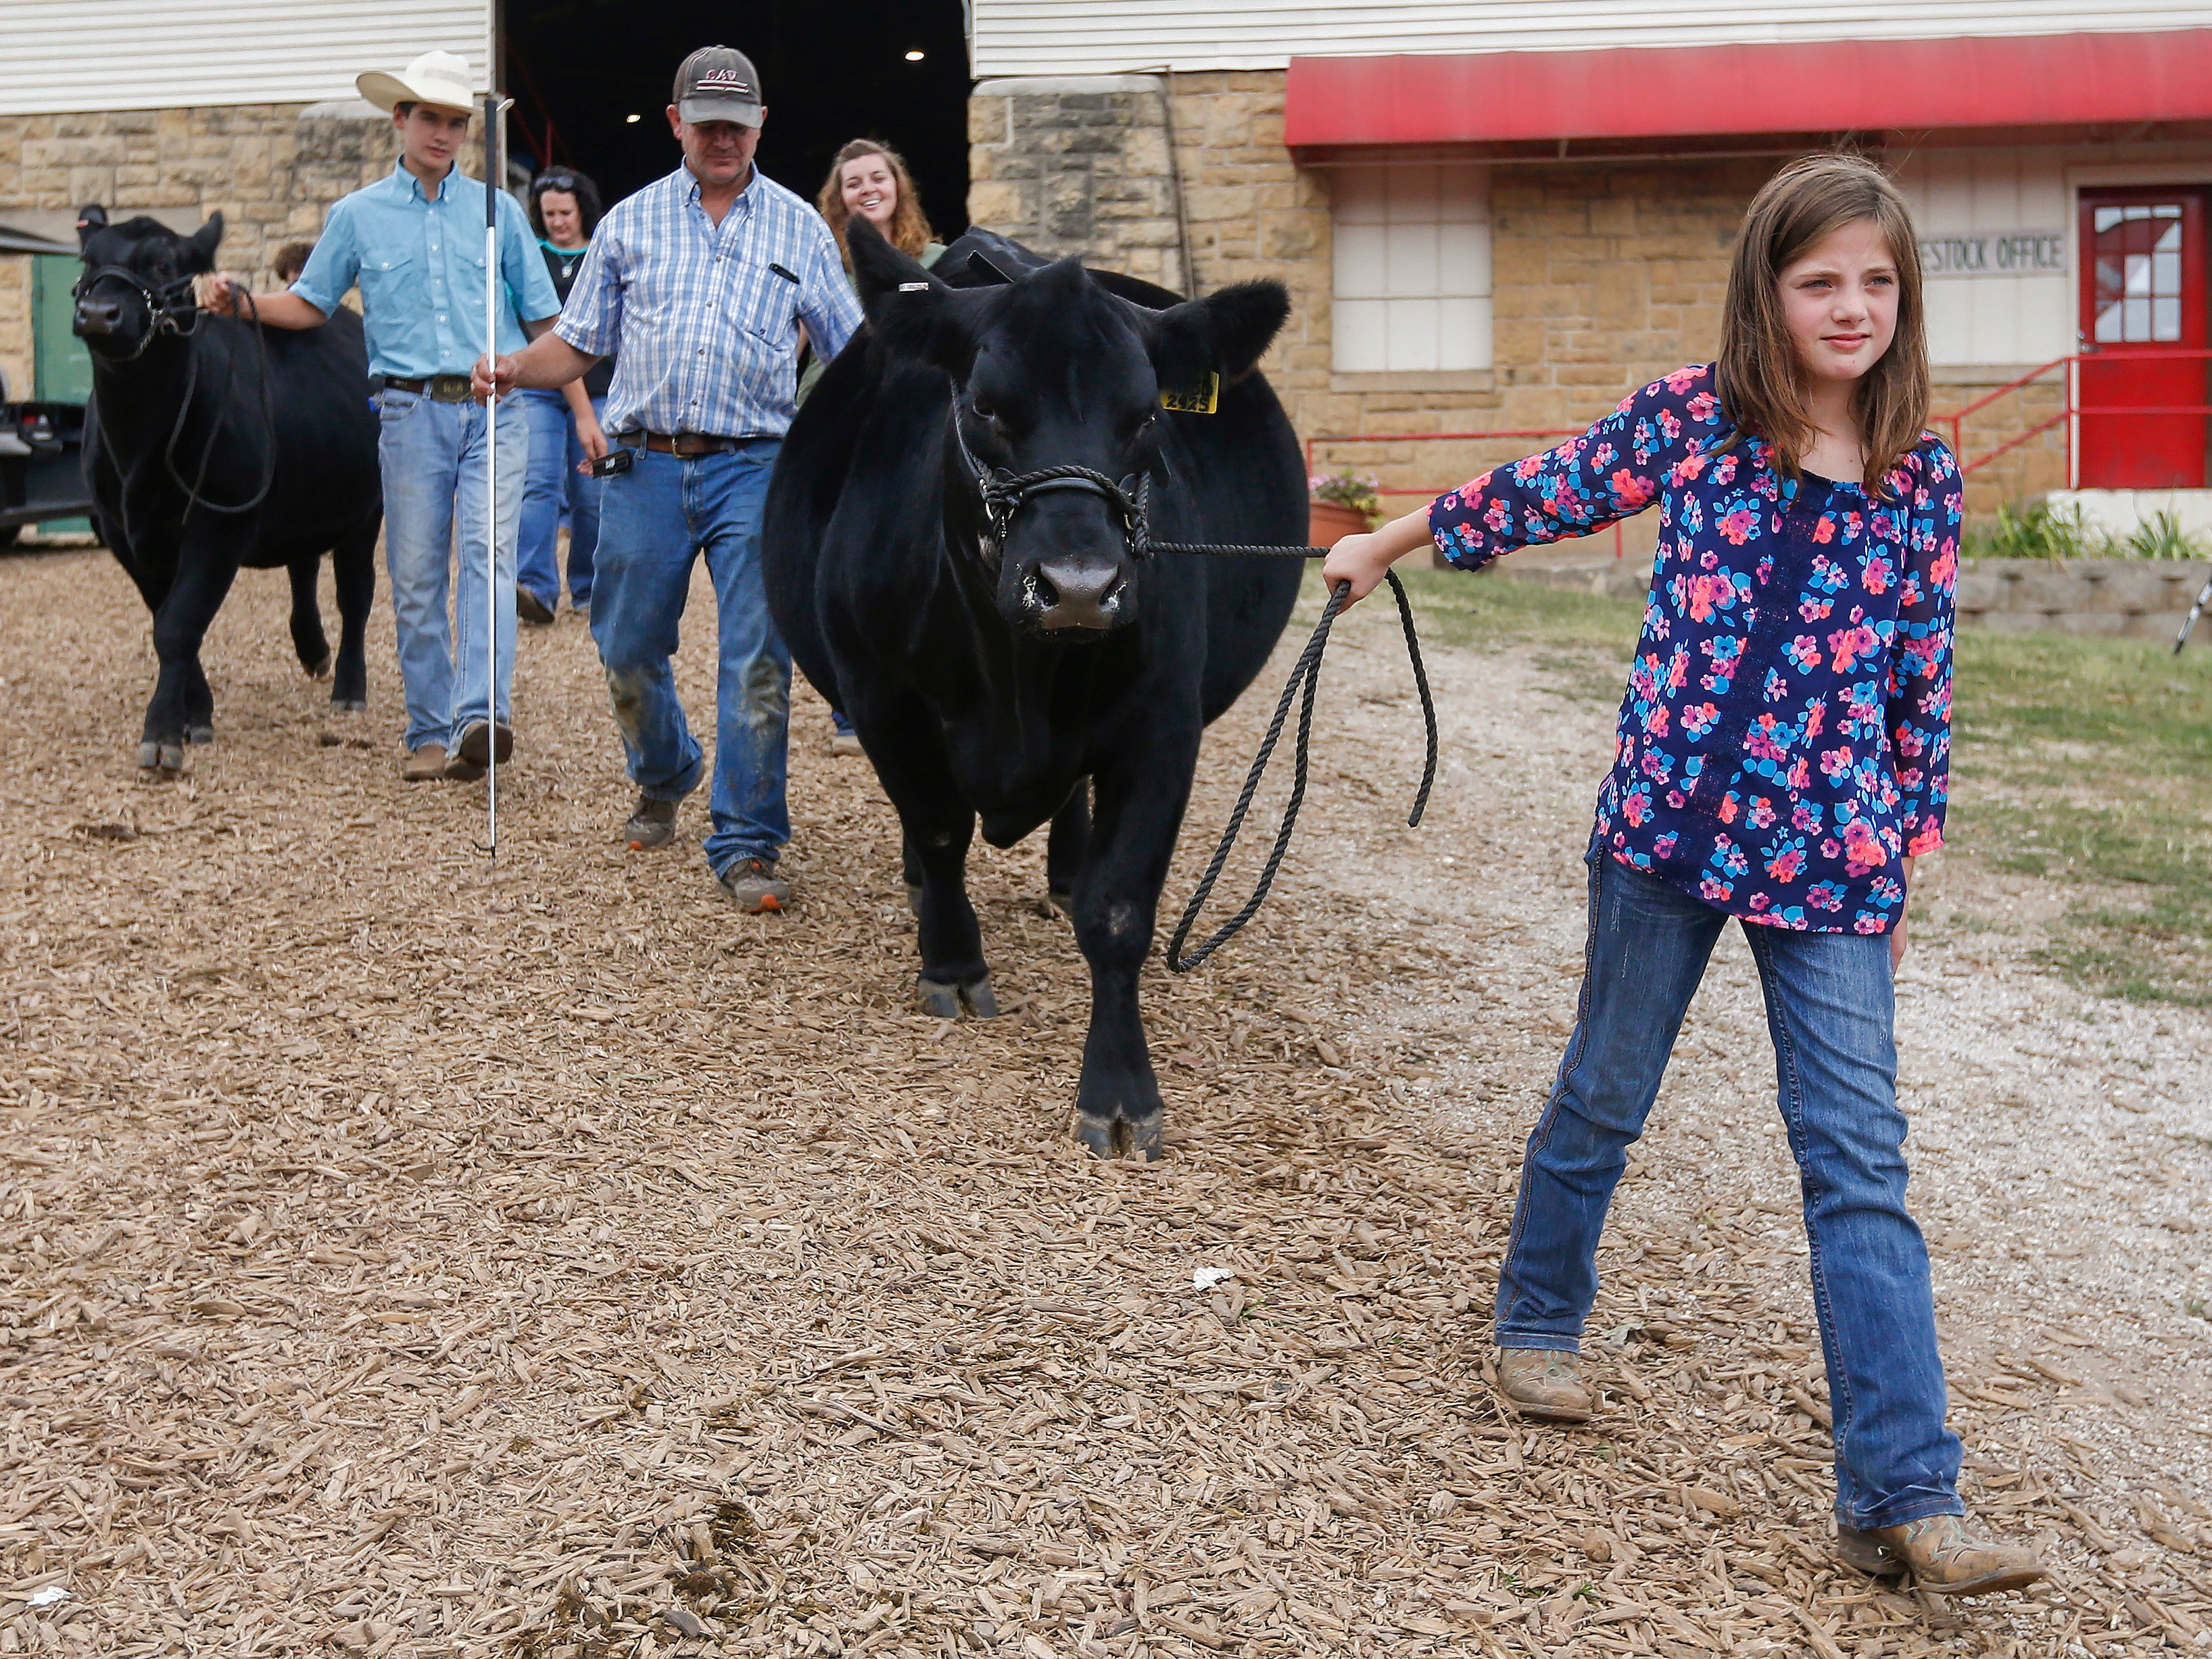 Ellie Dill, 9, of Marshfield, leads her cow out of the arena at the Ozark Empire Fair on Saturday, July 28, 2018.